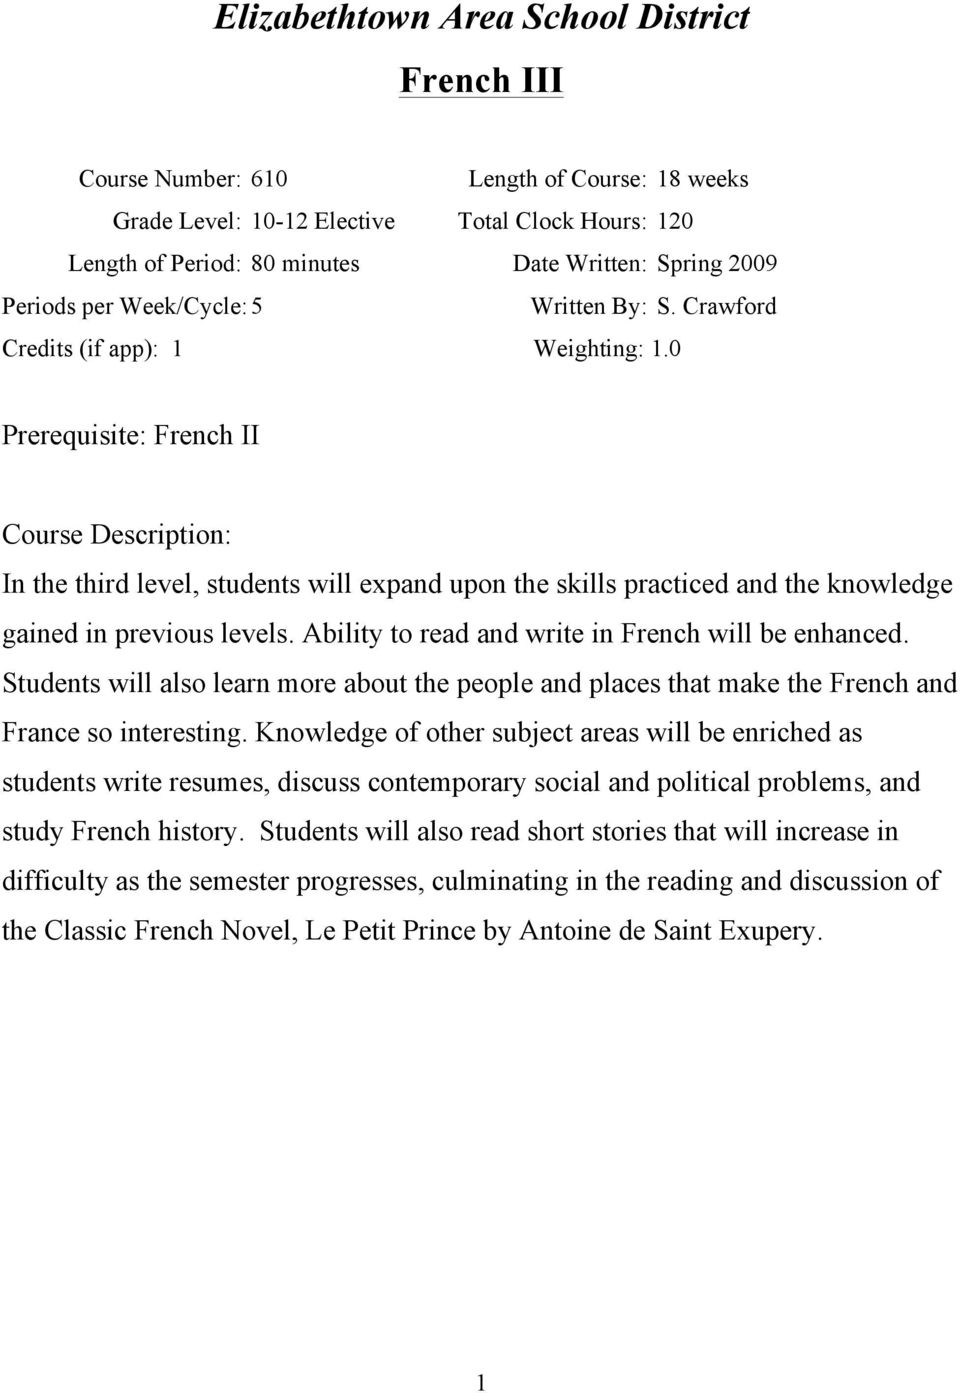 0 Prerequisite: French II Course Description: In the third level, students will expand upon the skills practiced and the knowledge gained in previous levels.